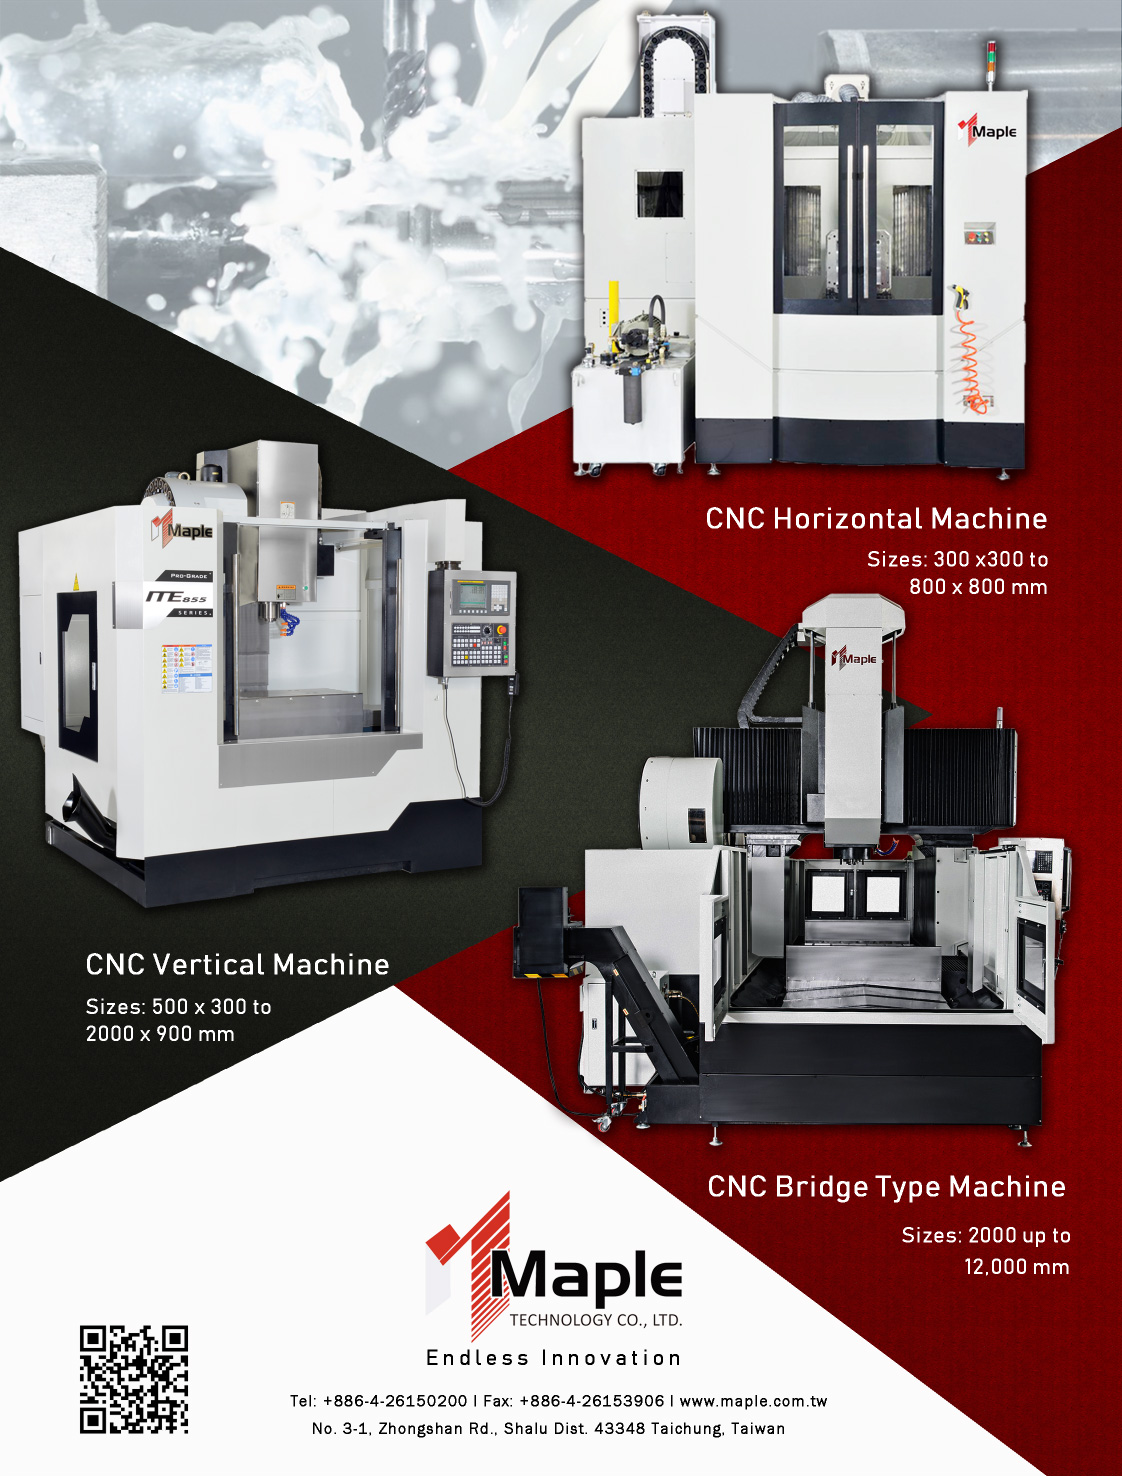 MAPLE TECHNOLOGY CO., LTD.